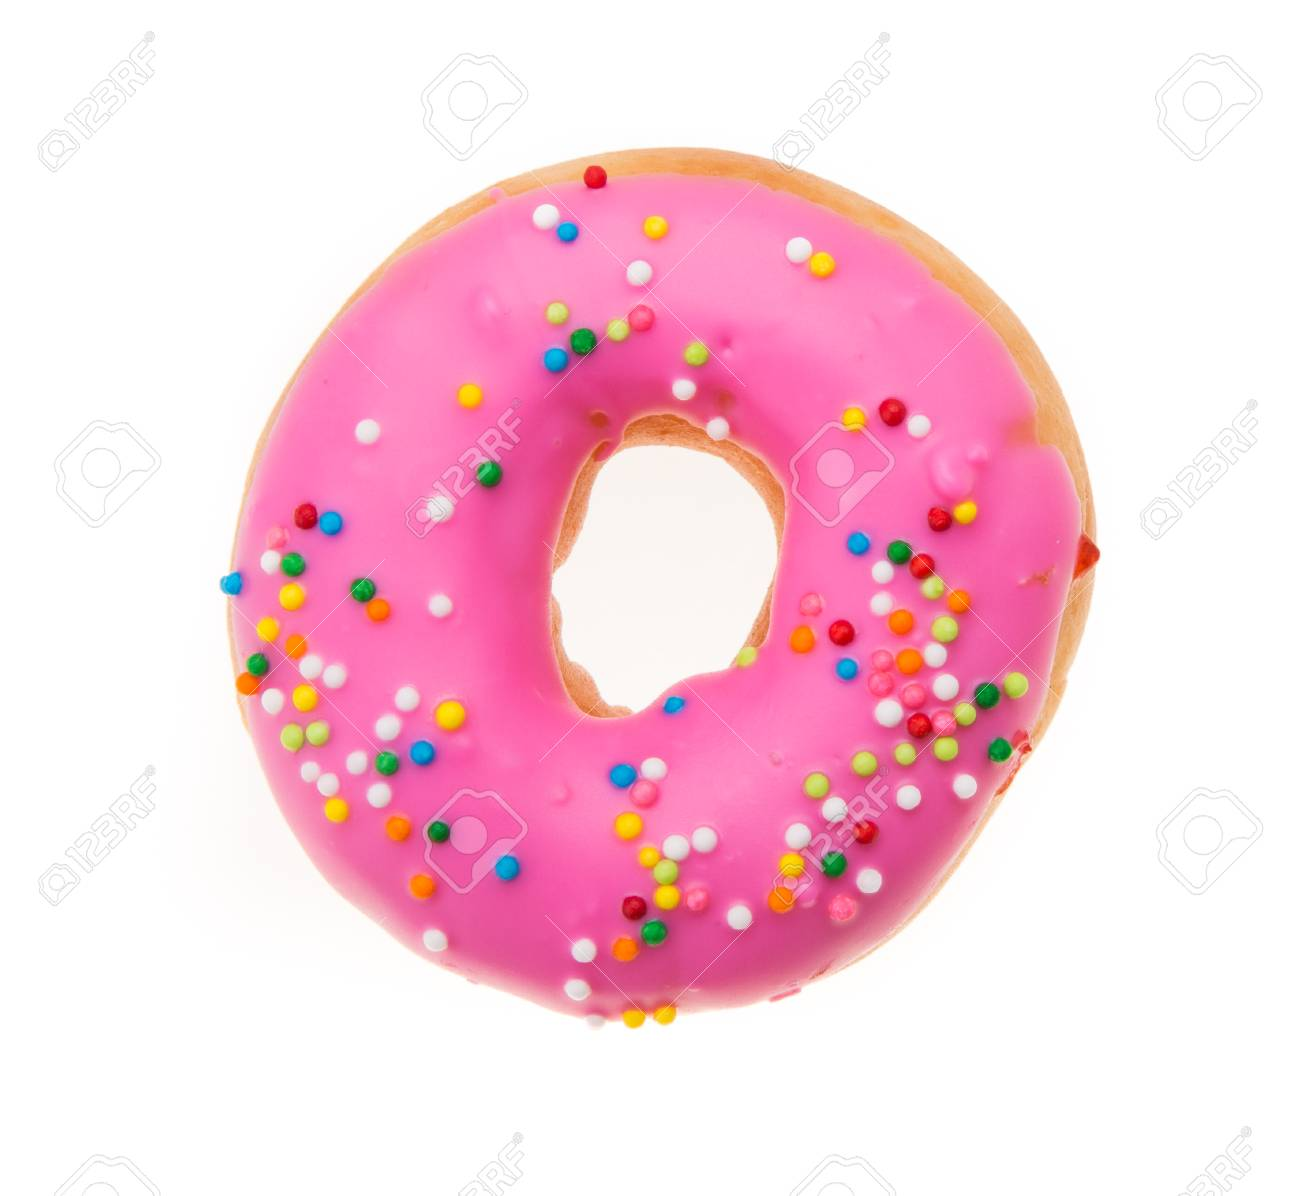 Doughnuts isolated on white background - 34366059